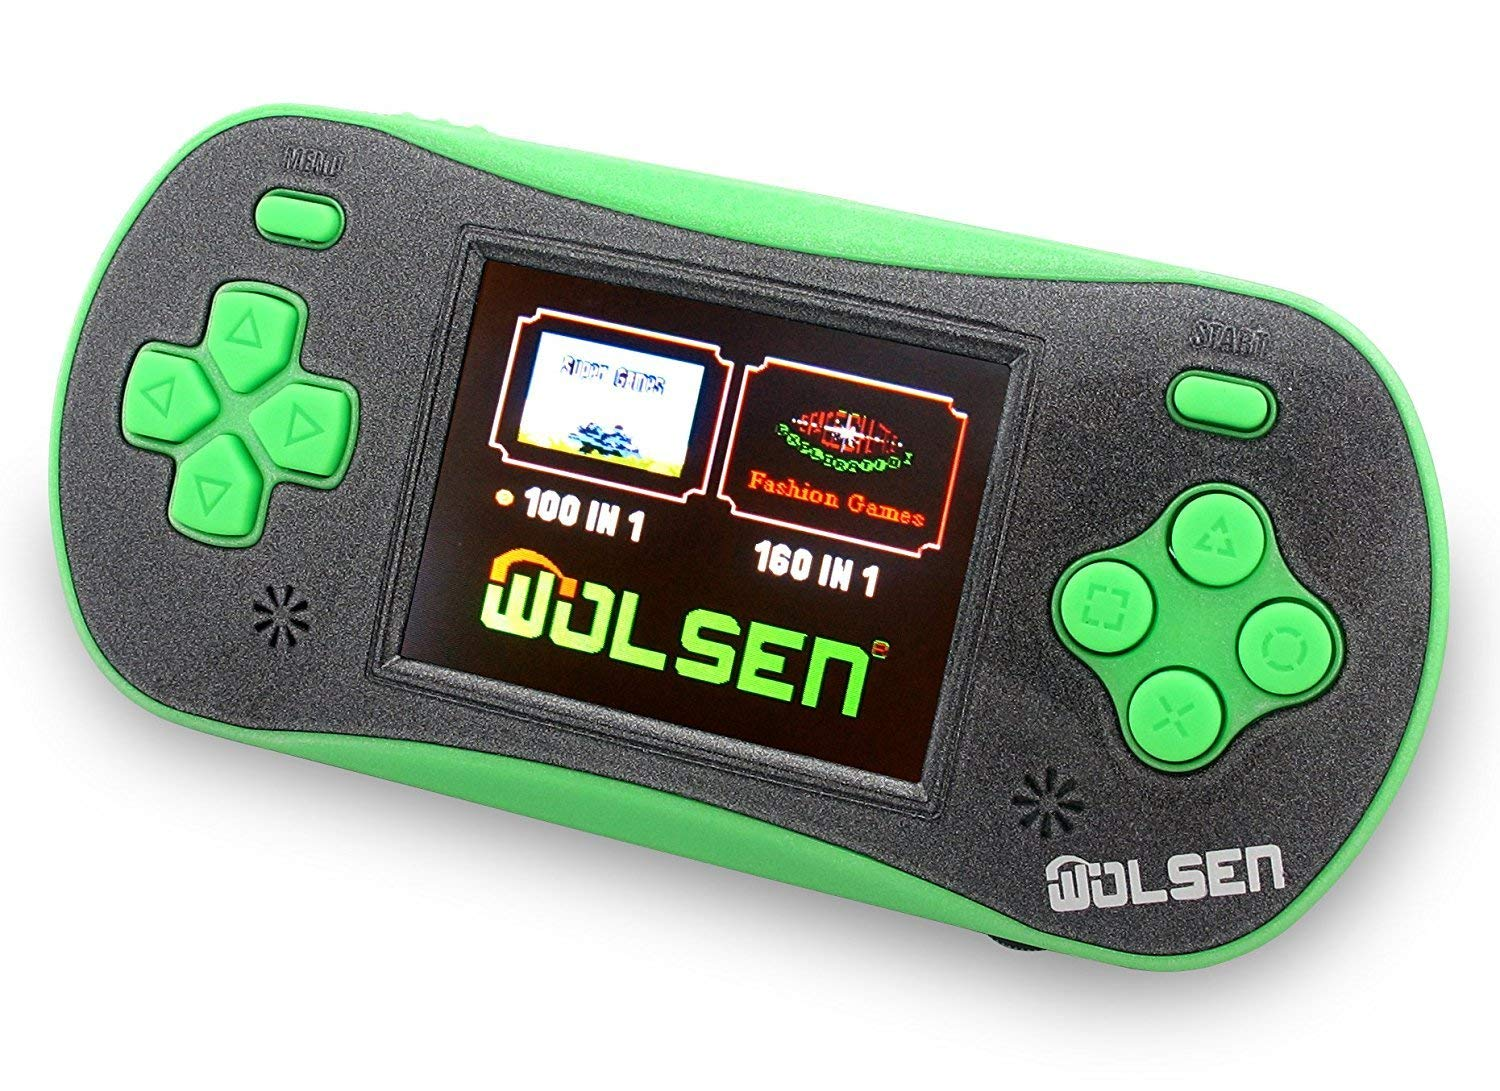 "WOLSEN 2.5"" LCD Portable Handheld Video Game Console Speaker (3 X AAA) 260 in 1 Games (Green)"